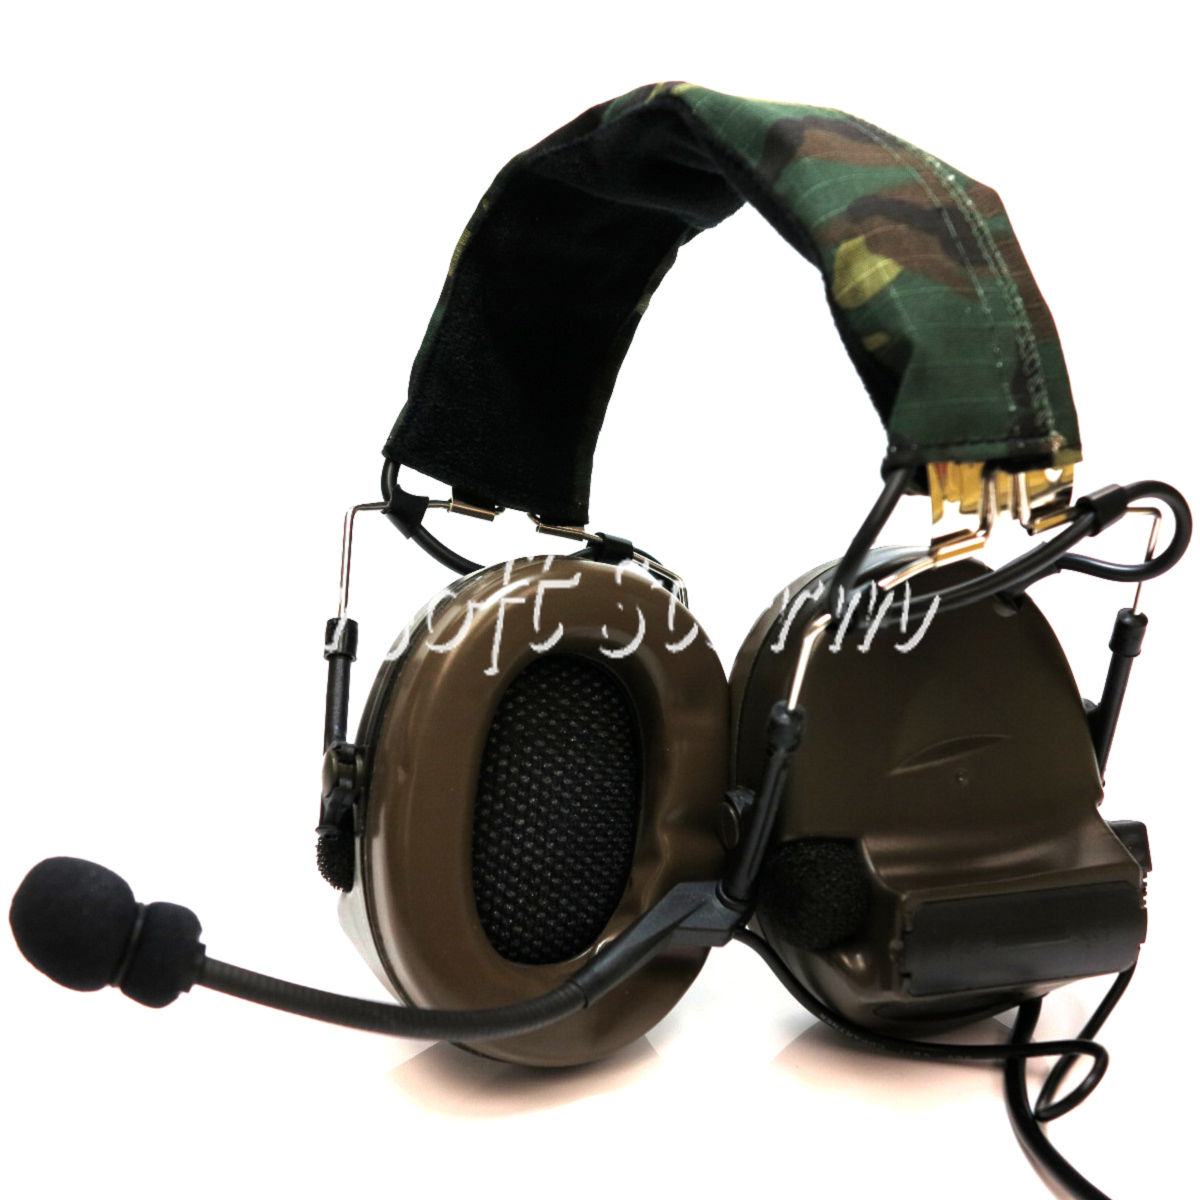 Airsoft Gear SWAT Element Comtac II Style Tactical Headset Olive Drab Woodland Camo